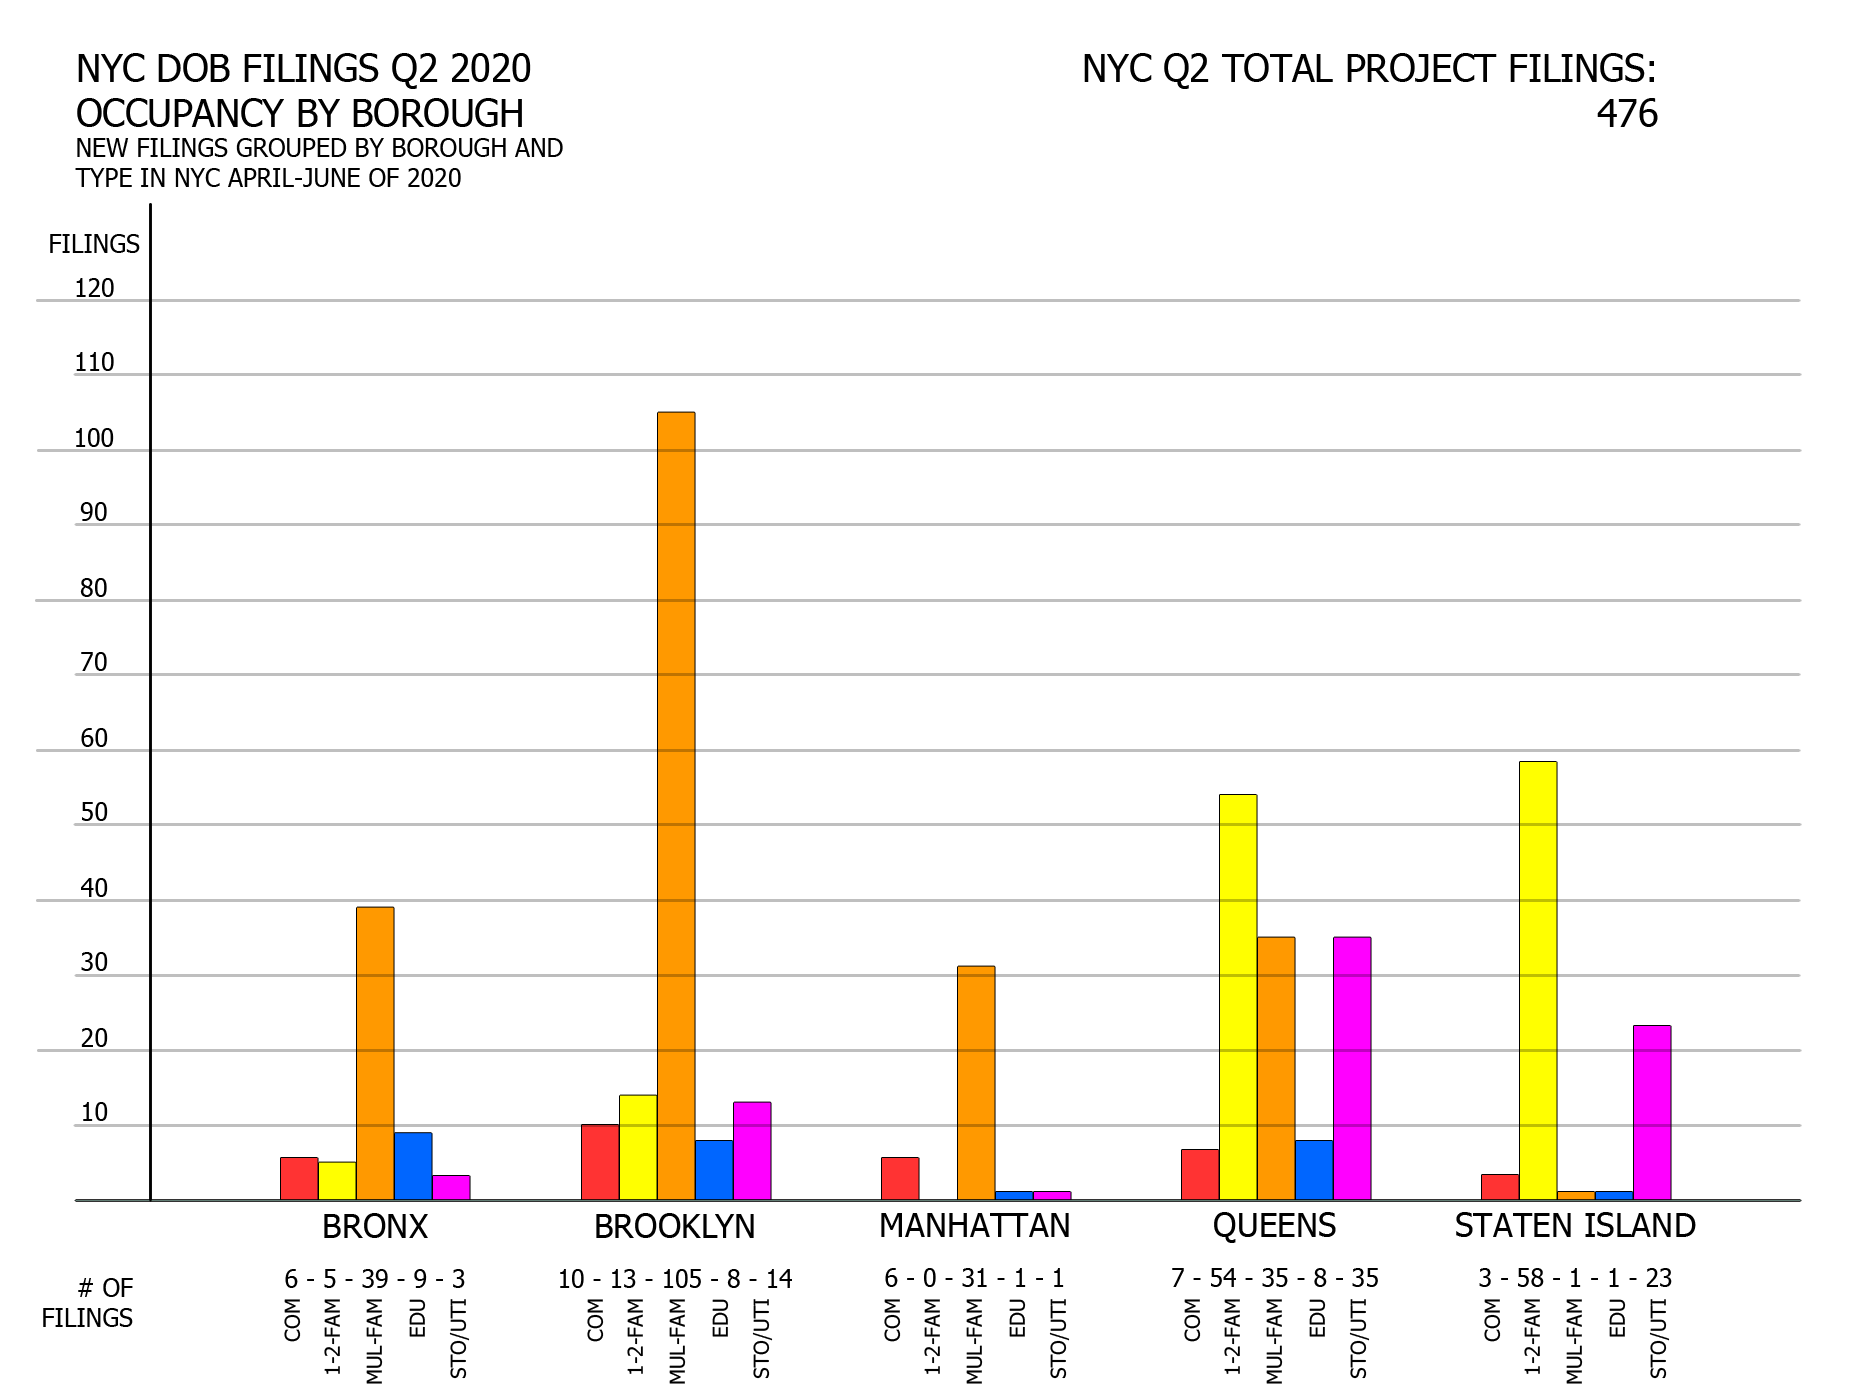 NYC Q2 2020 filings - Filings by borough and occupancy. Image credit: Vitali Ogorodnikov